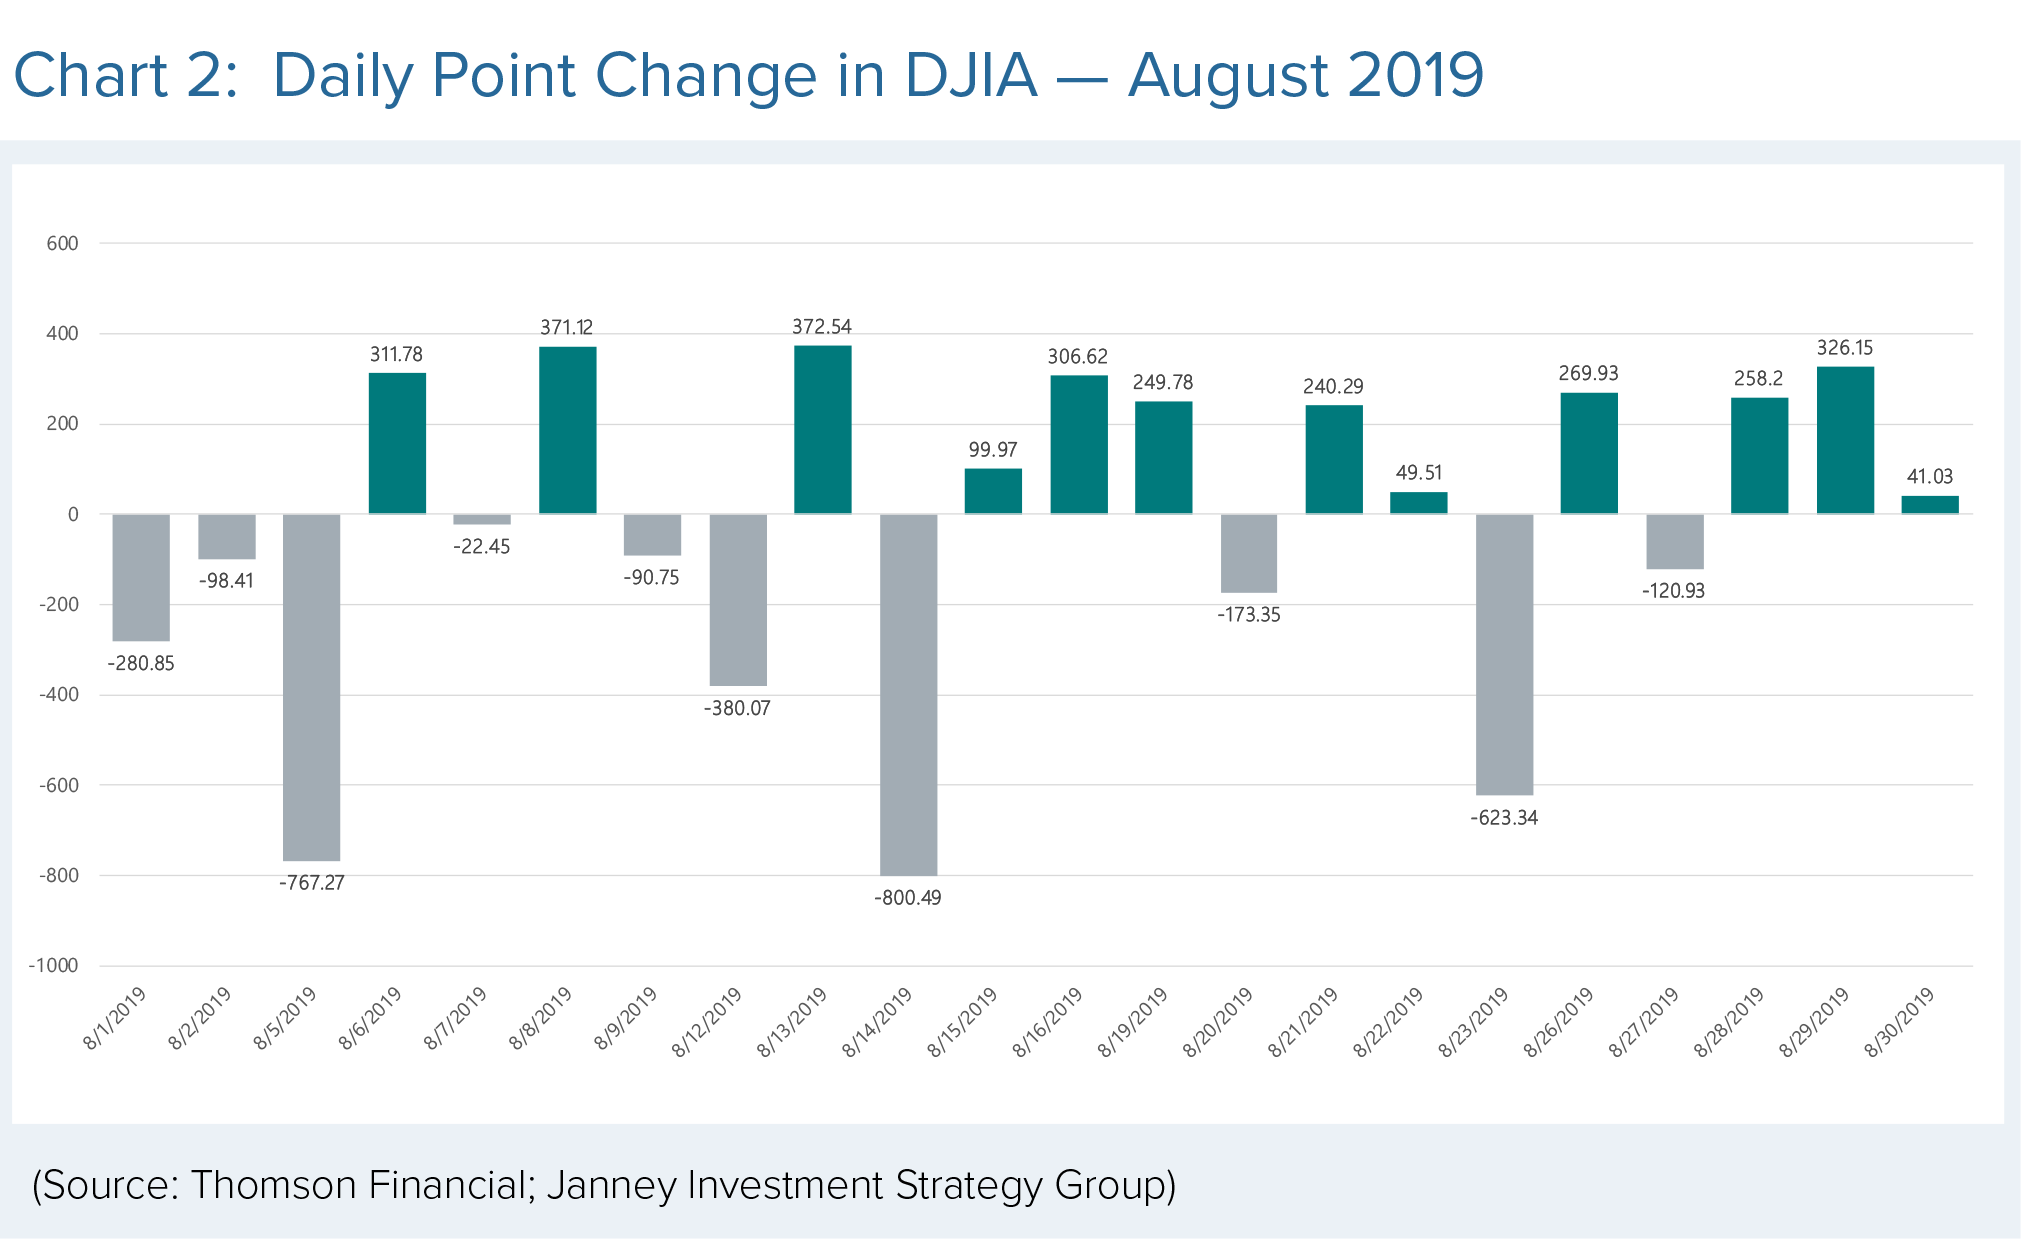 Daily point change in DJIA in August 2019